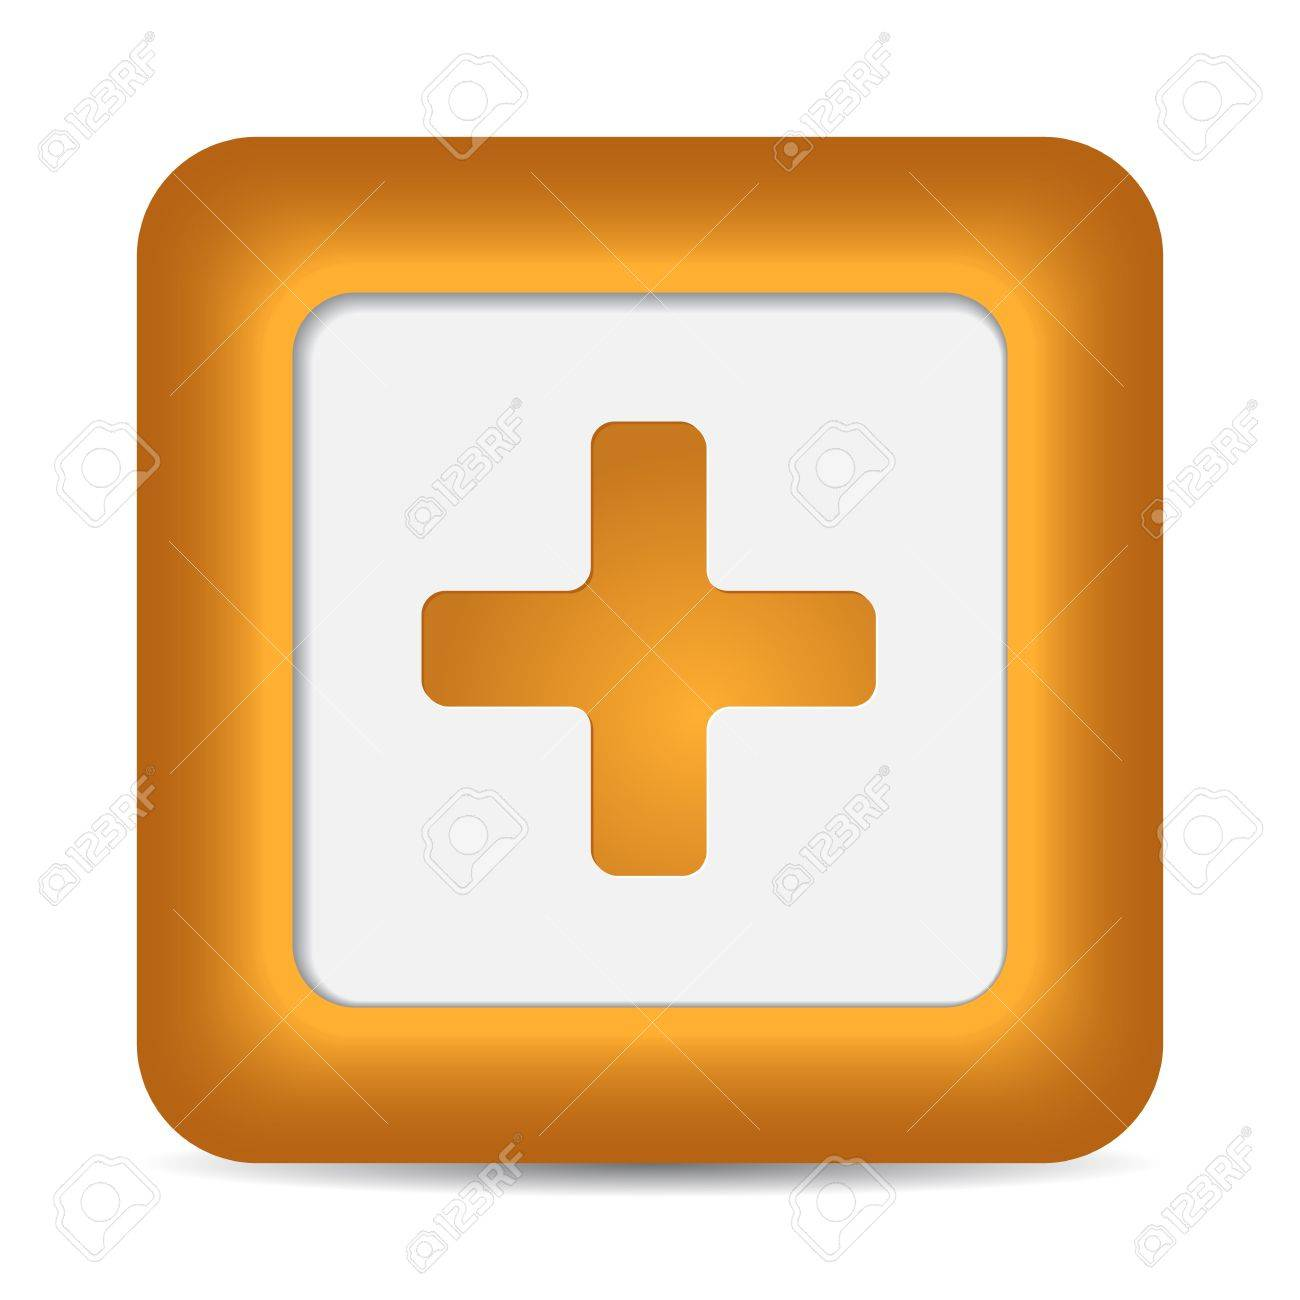 Orange glossy web button with addition sign. Rounded square shape icon on white background. Stock Vector - 16924205